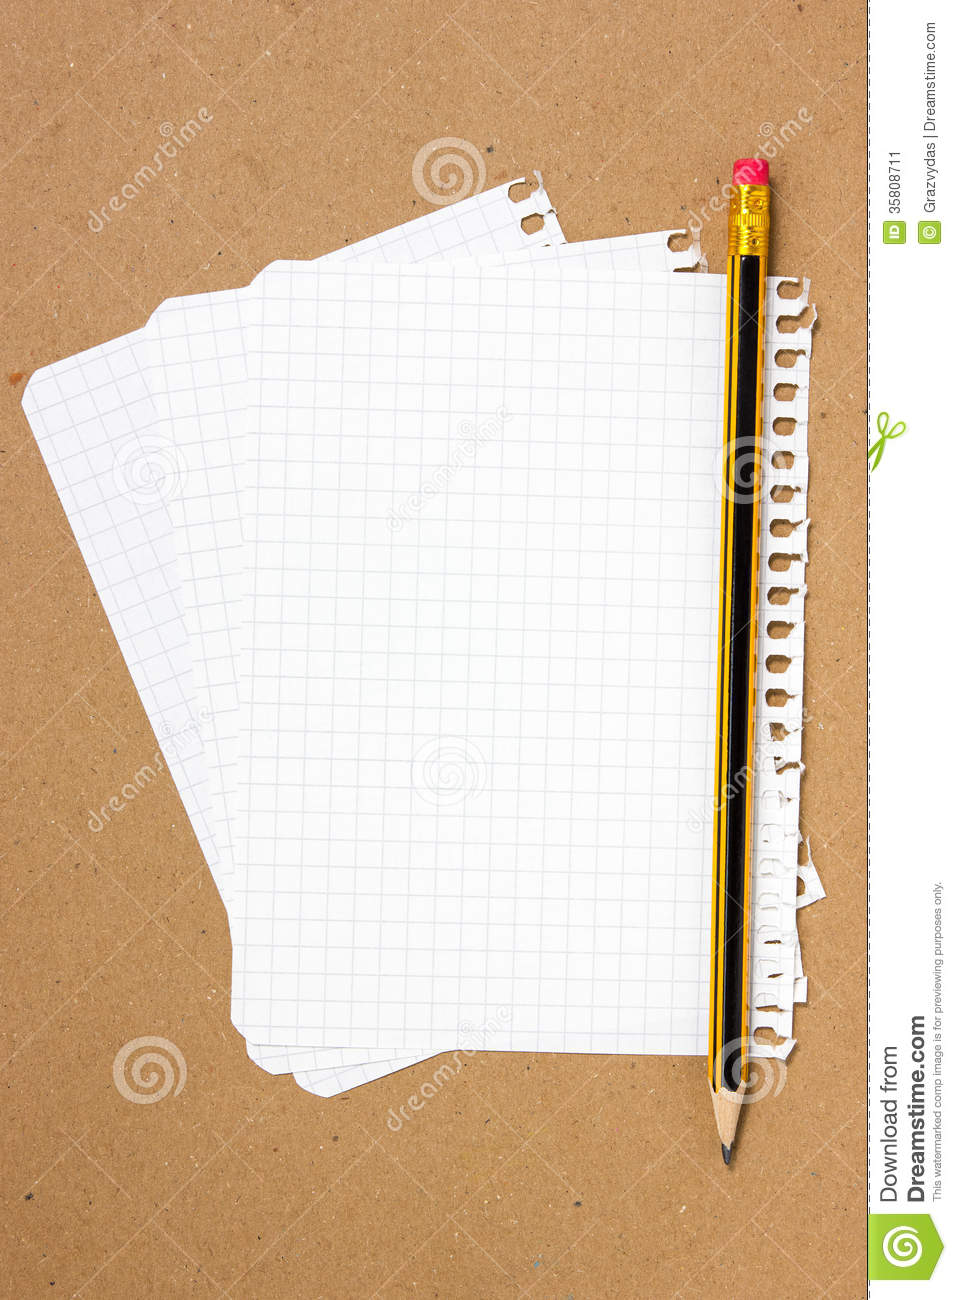 Notebook Sheet And Pencil Stock Image  Image 35808711